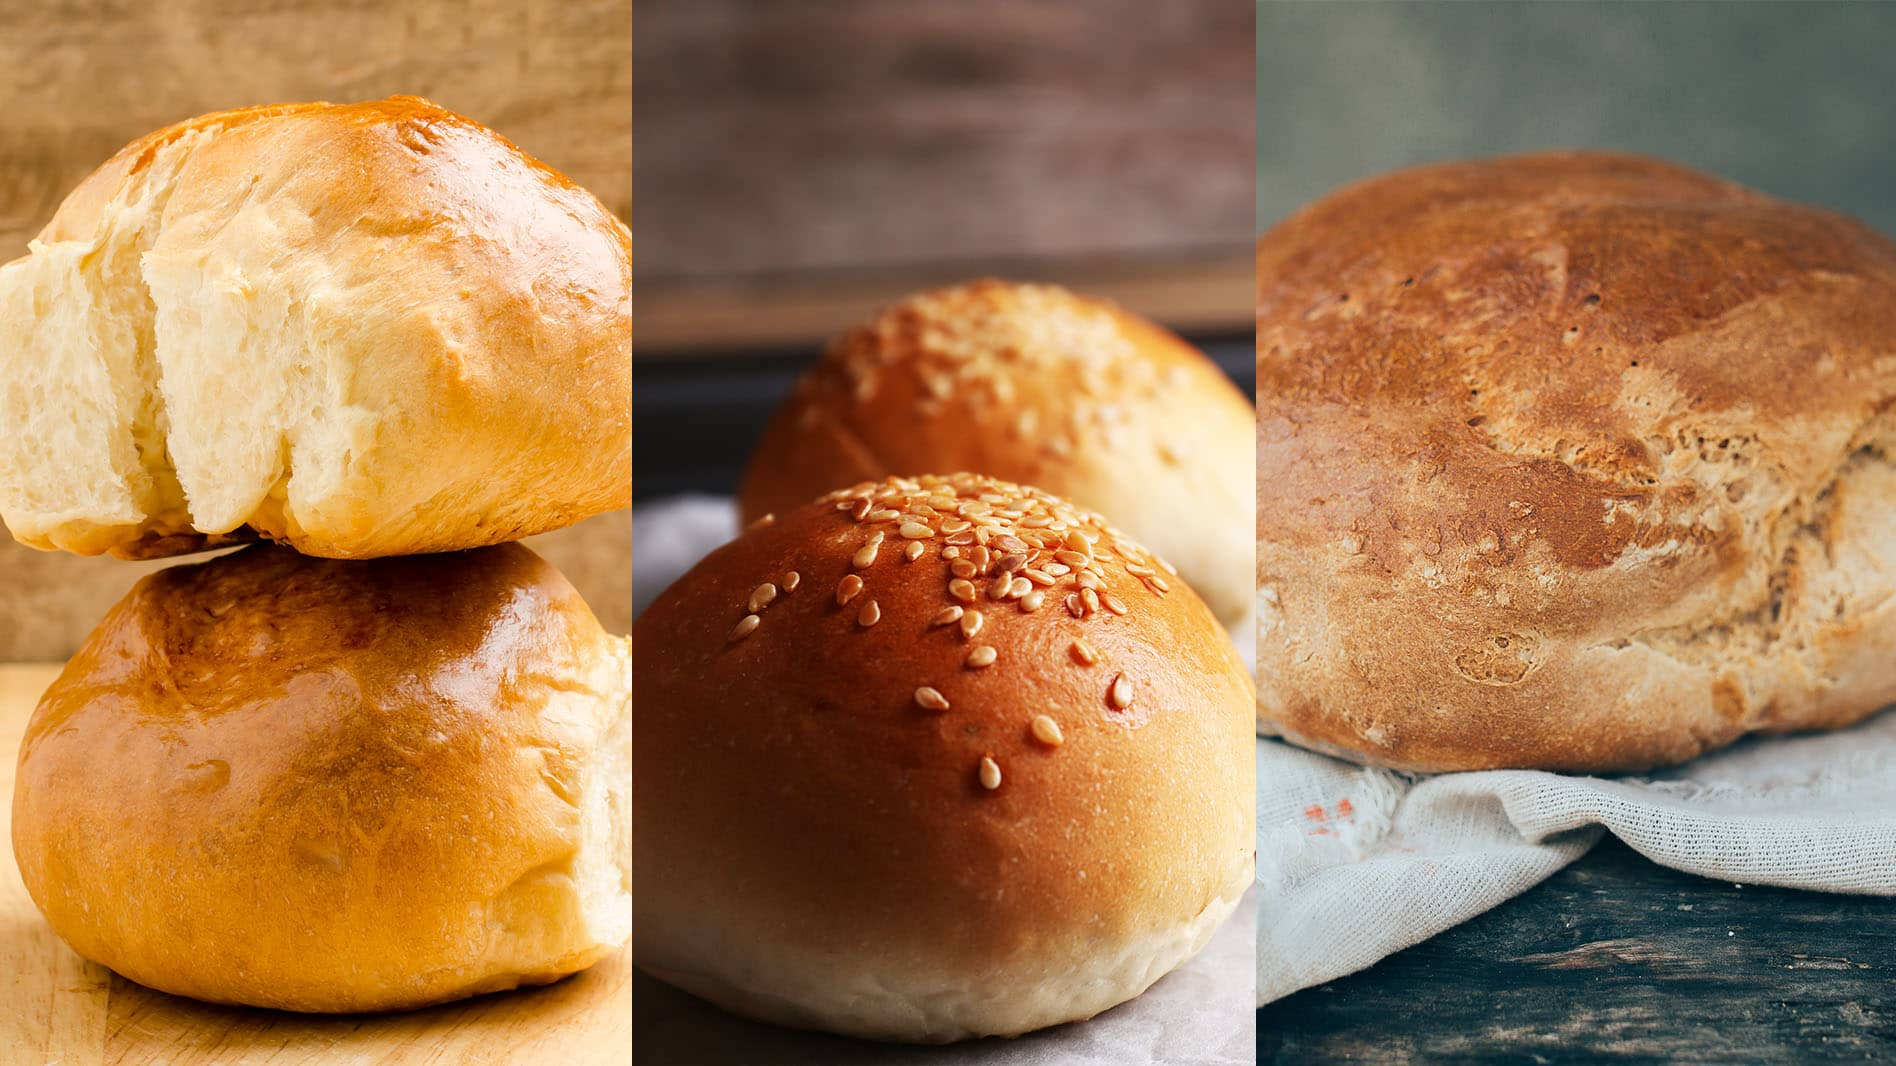 The Best Buns For Your Burgers REVEALED!